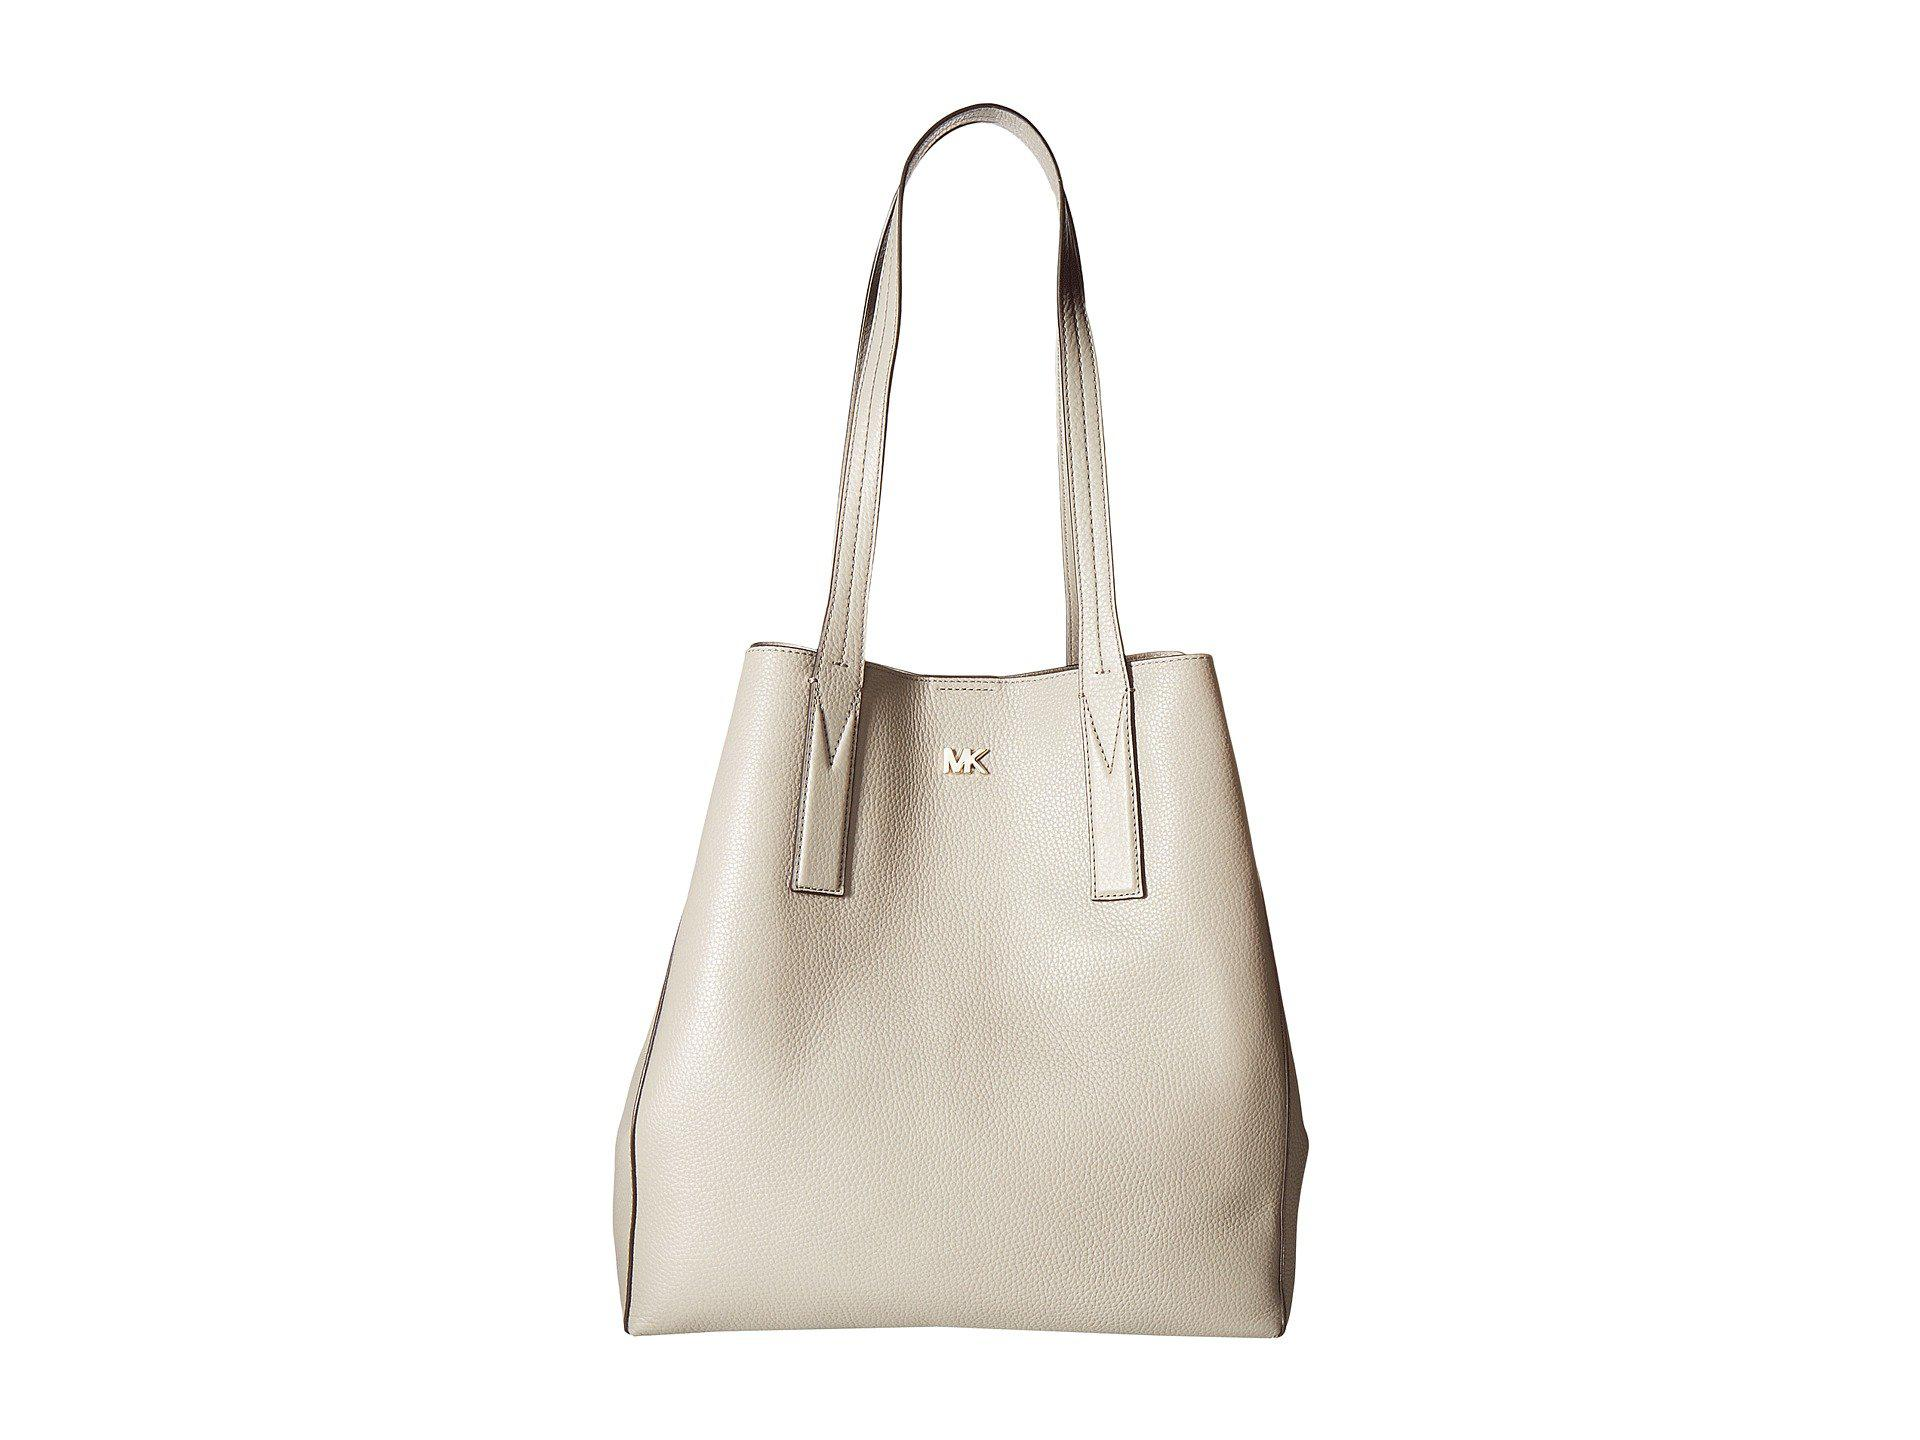 f8db84851cead Lyst - MICHAEL Michael Kors Junie Large Tote in Gray - Save 15%